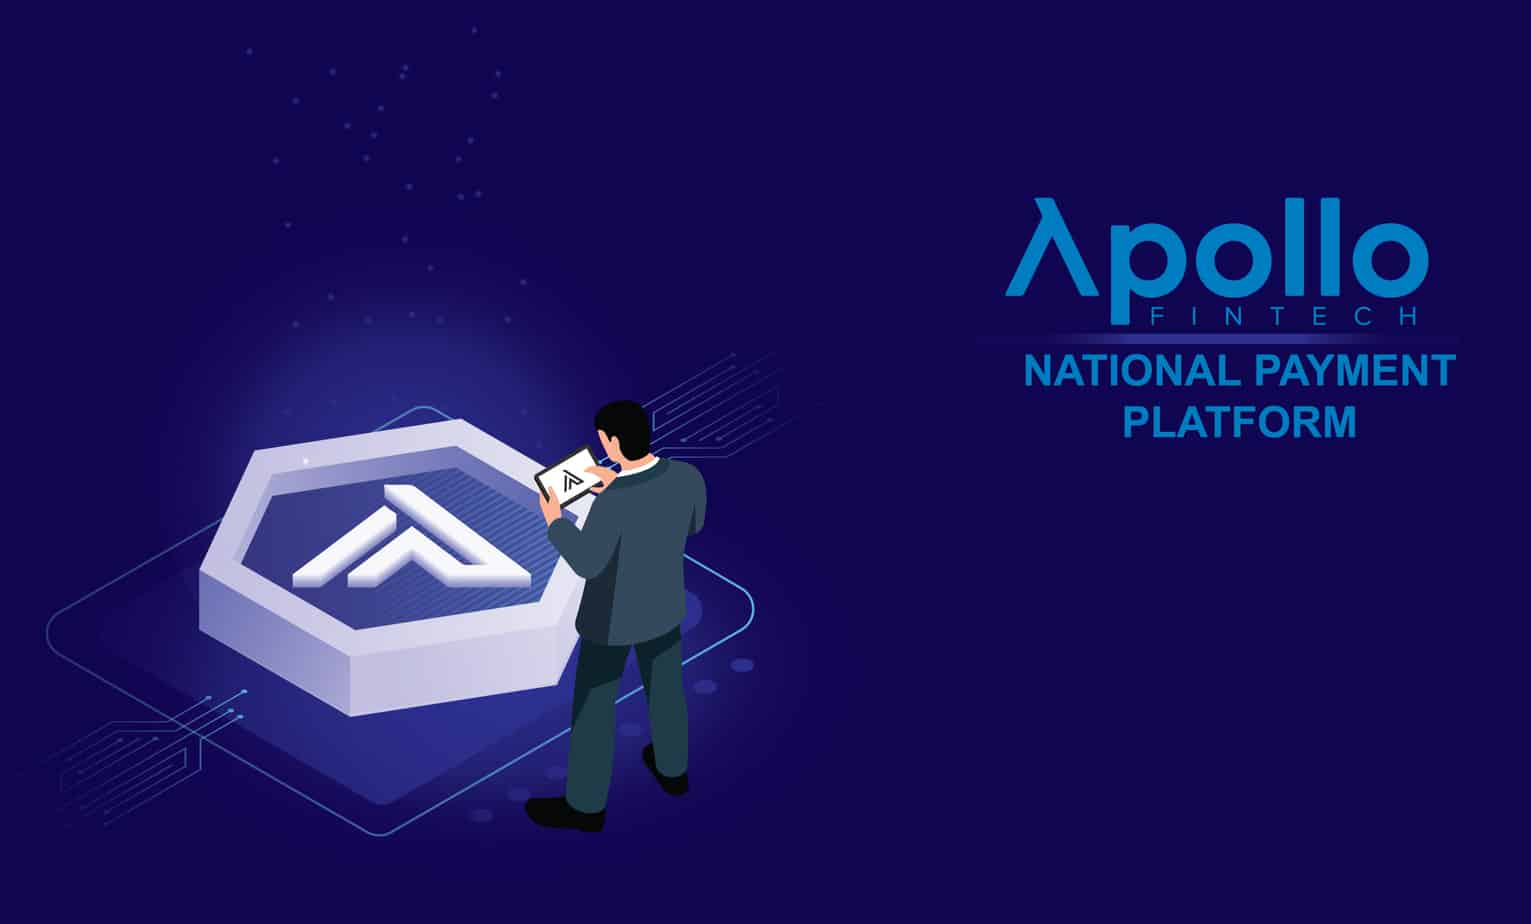 Apollo's NPP - First Blockchain CBDC Platform